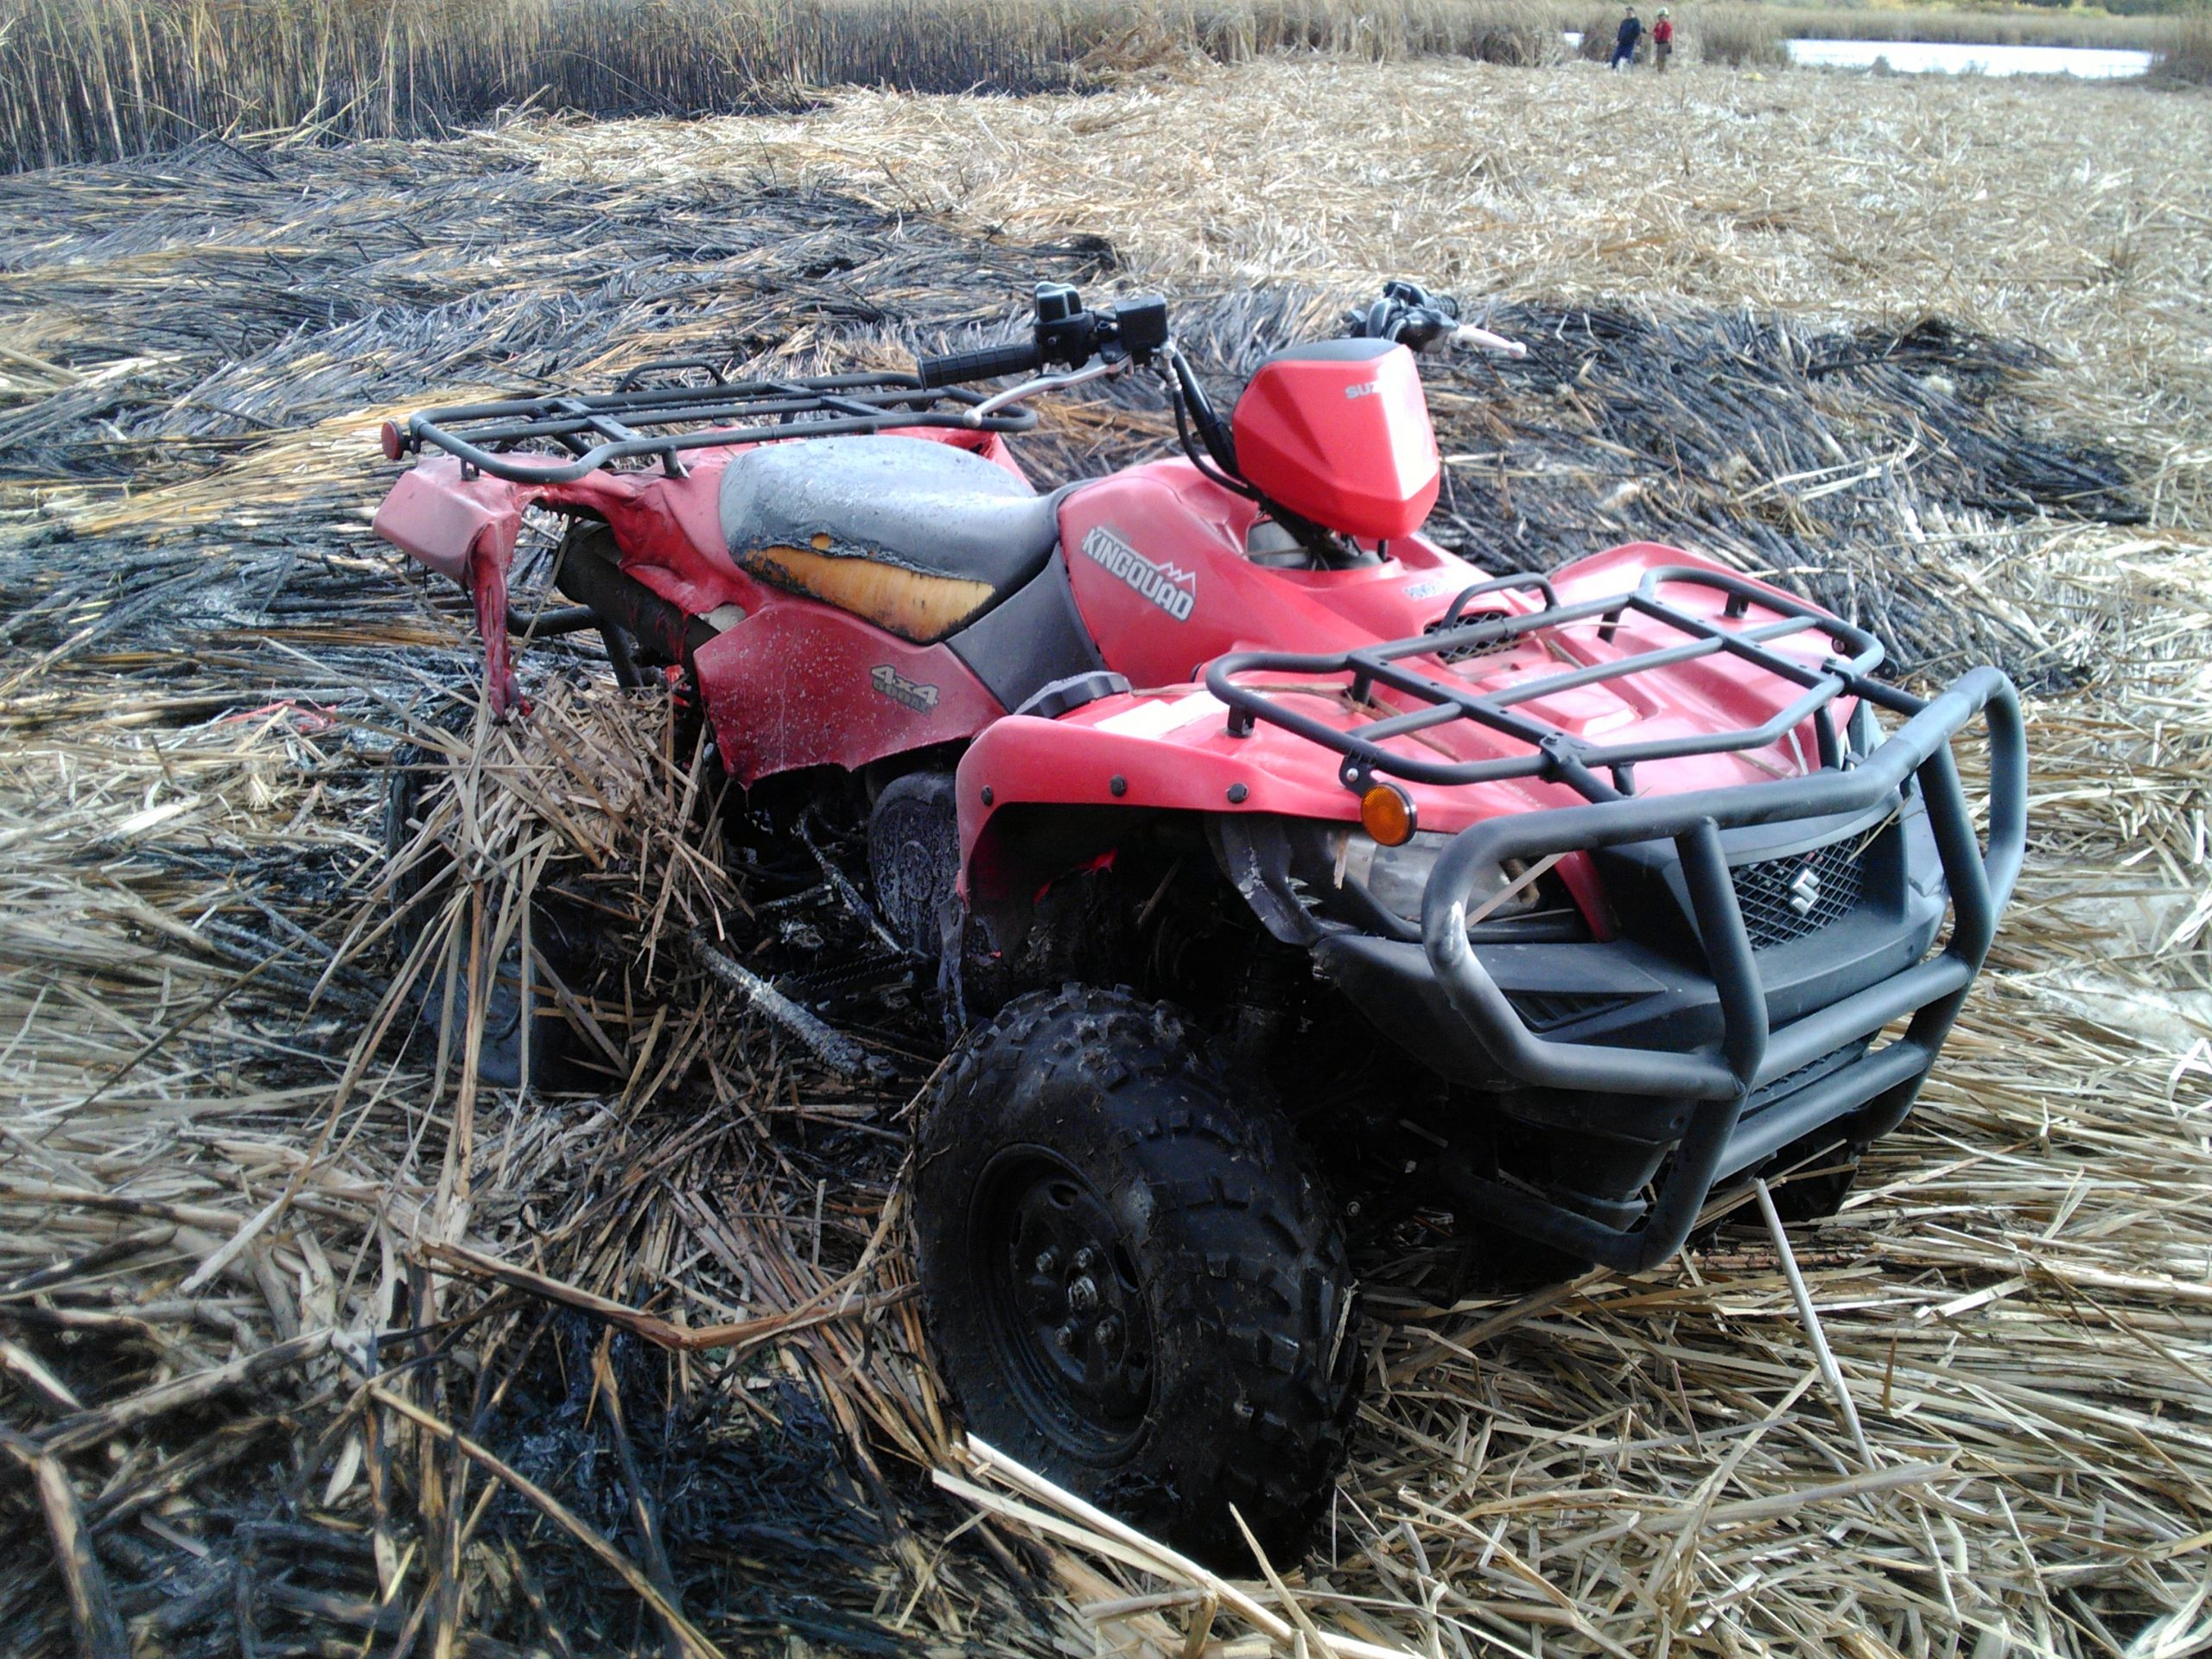 ATV fire spreads to marsh in Belleville